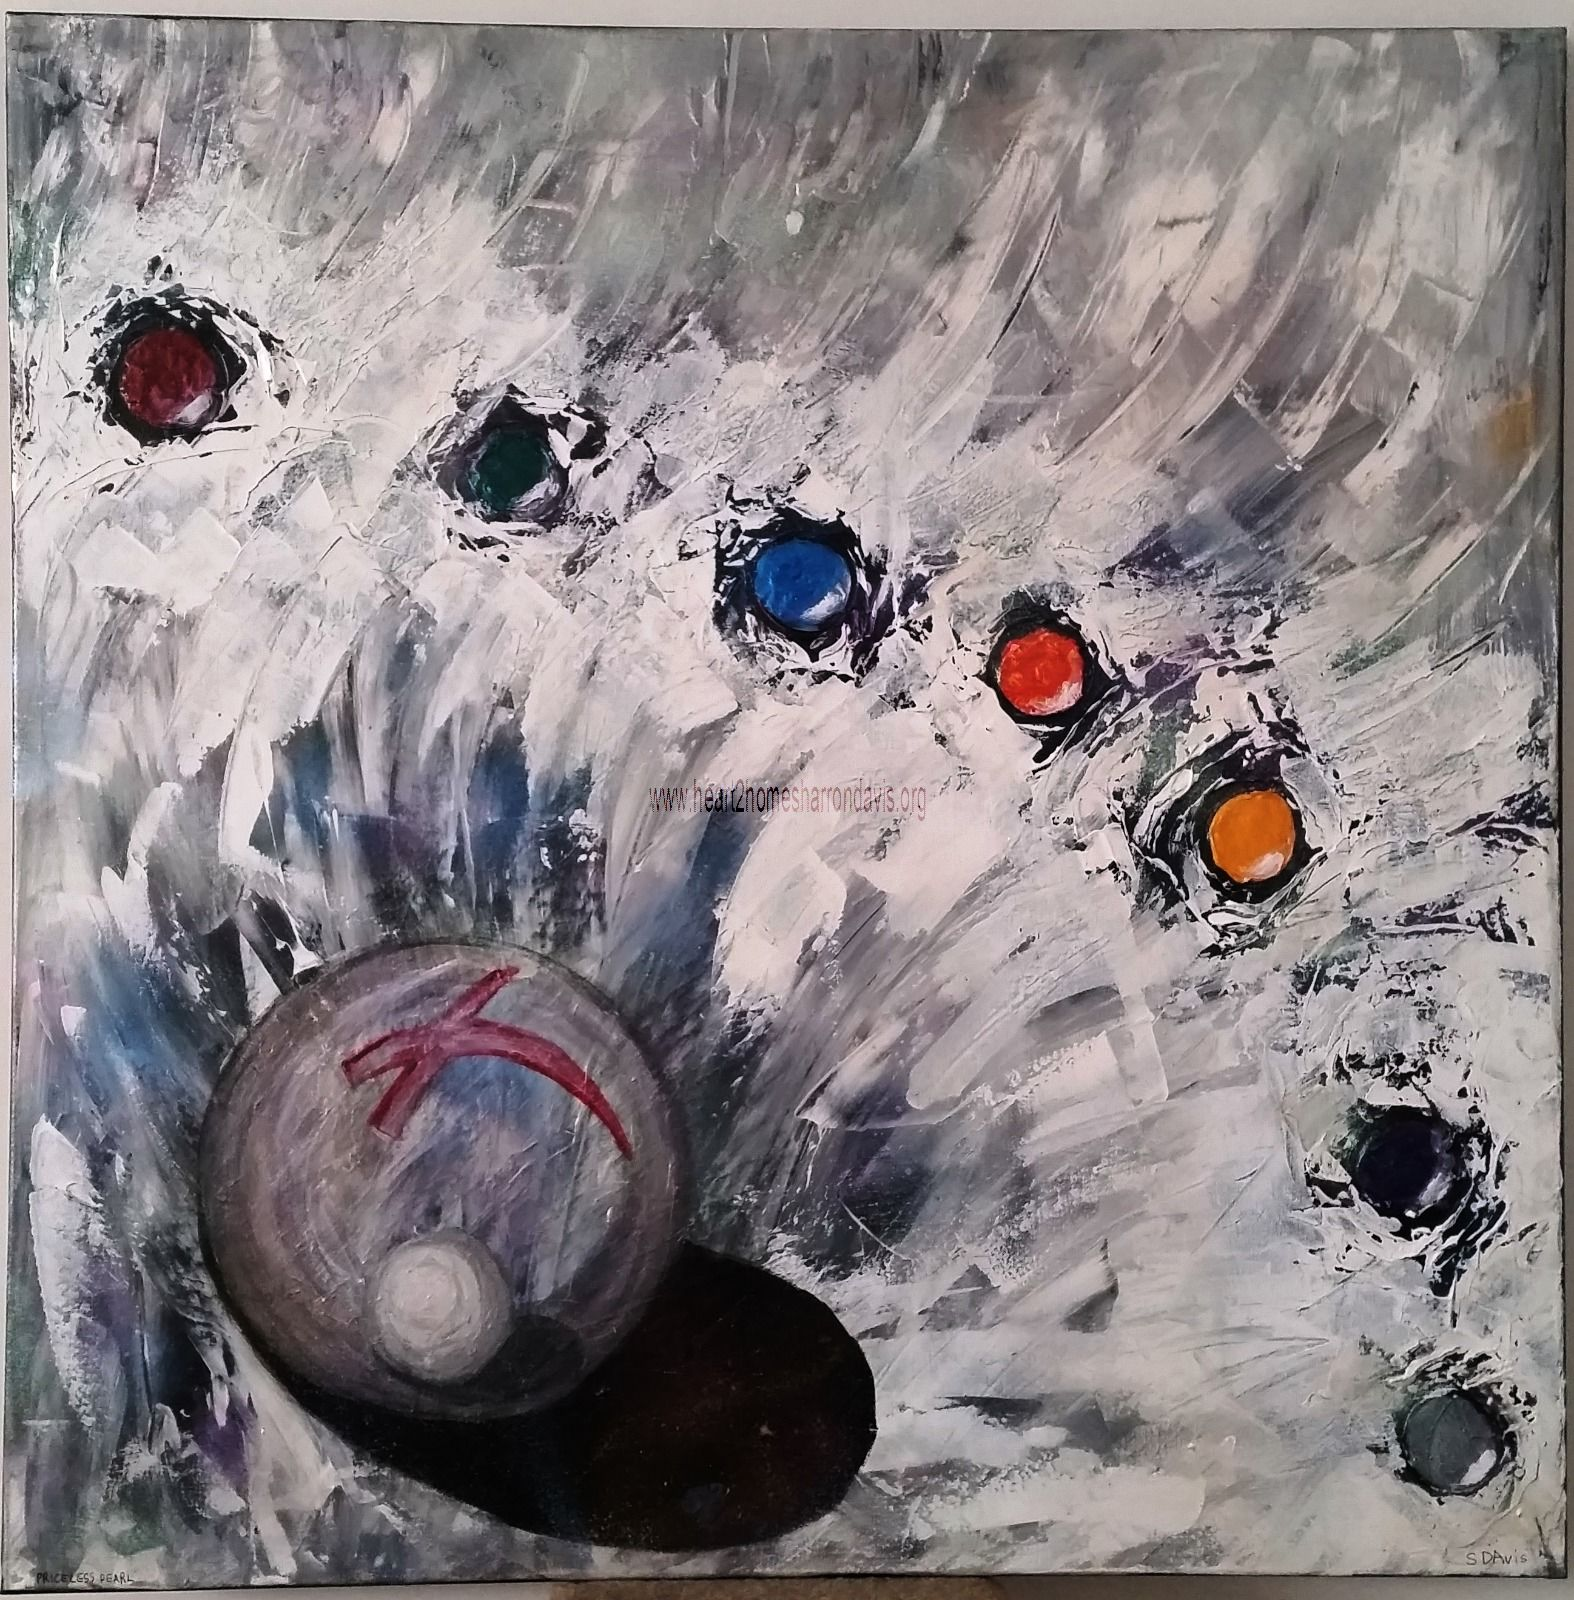 Name - PRICELESS PEARL 120cm x 120cm (48in x 48in) AU$3,000.00 Acrylic